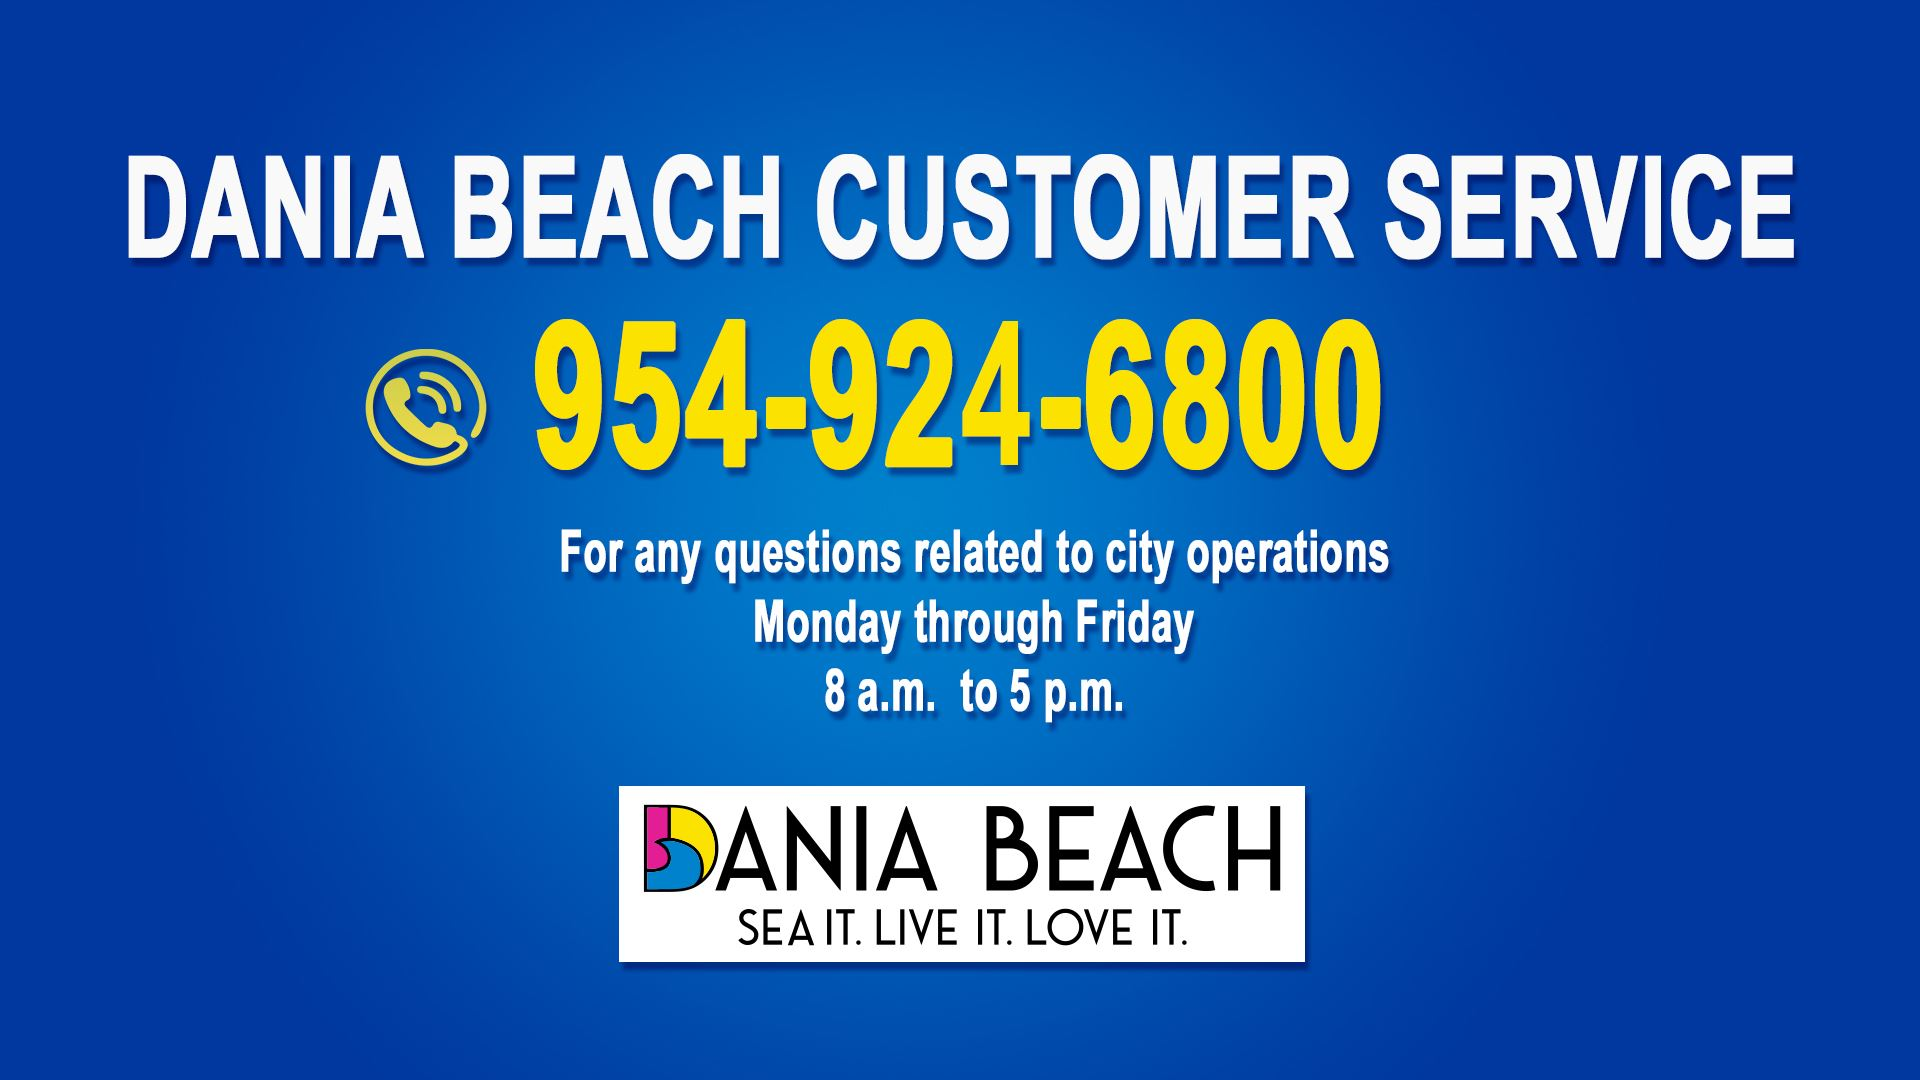 Dania Beach Customer Service